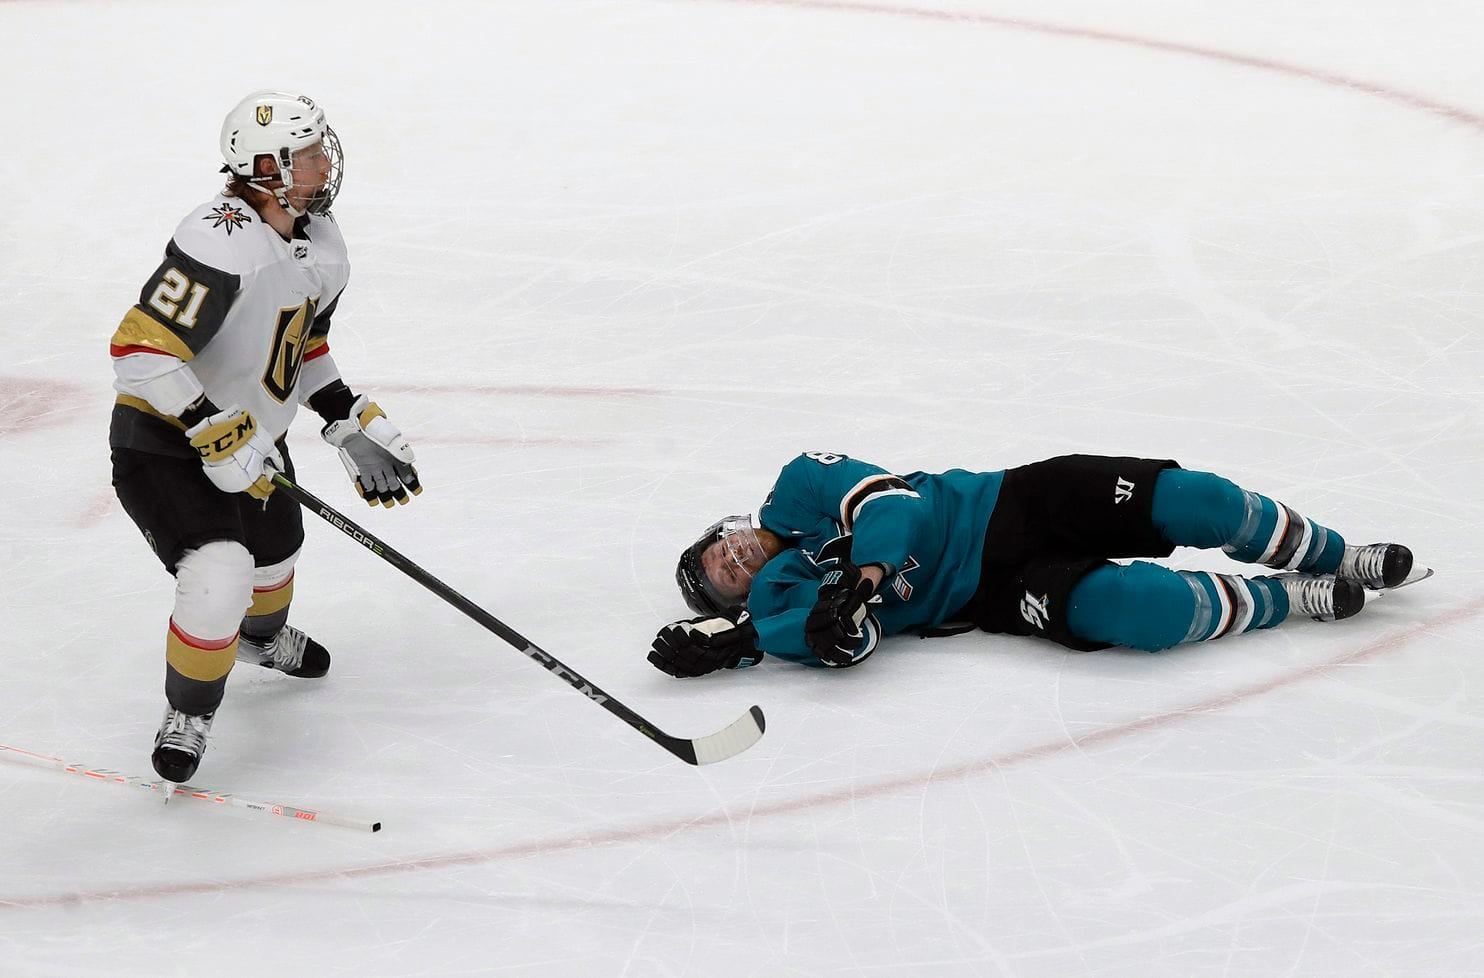 NHL Apologized For Crucial Penalty Call, Vegas Golden Knights Owner Says